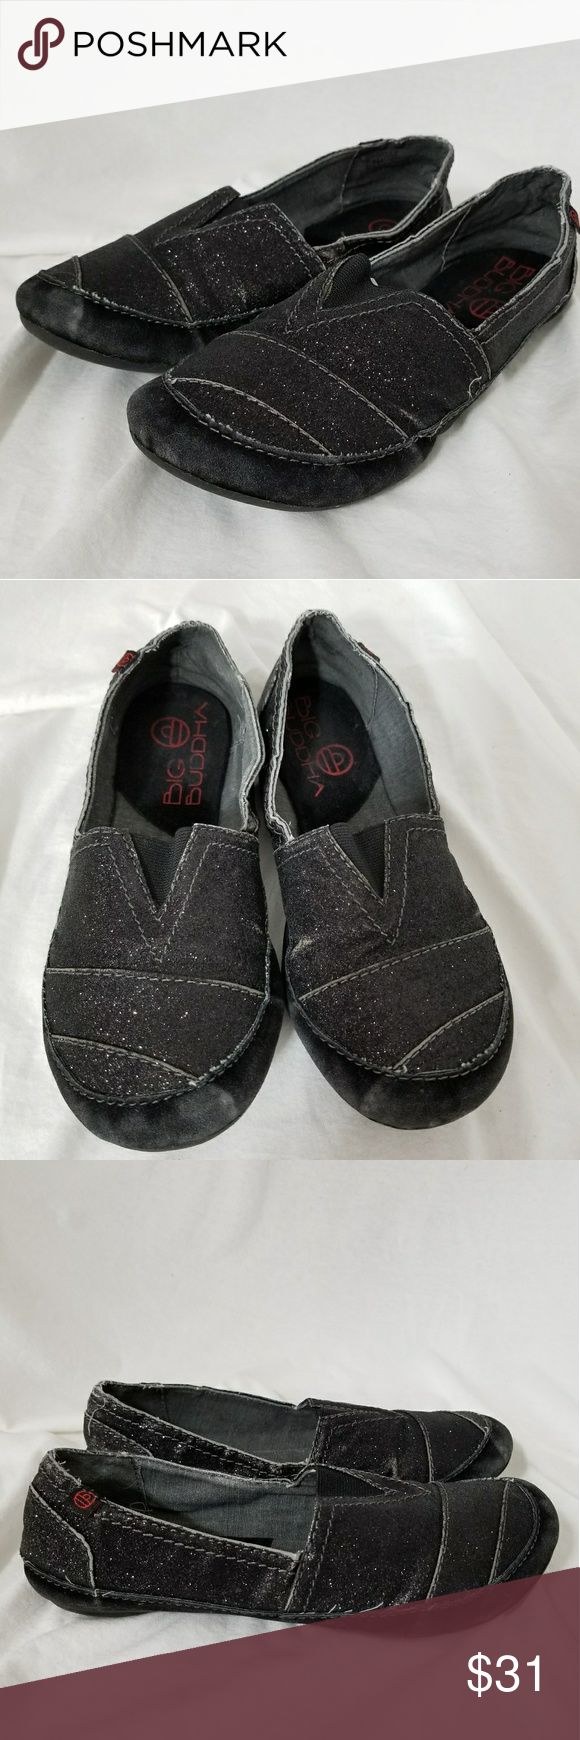 """BIG BUDDHA Sz 7.5 Black Sarkling Loafers Brand: Big Buddha  Description: *Size 7.5M Black Loafers with Sparkle and Elastic on Top of Foot *Very Comfortable Feeling *Light Fading Where the Shoes Have Actually Cracked *Bottoms are Excellent *Very Good Pre-Loved Condition  *no trades, offers via the offer button only"""" Big Buddha Shoes Flats & Loafers"""